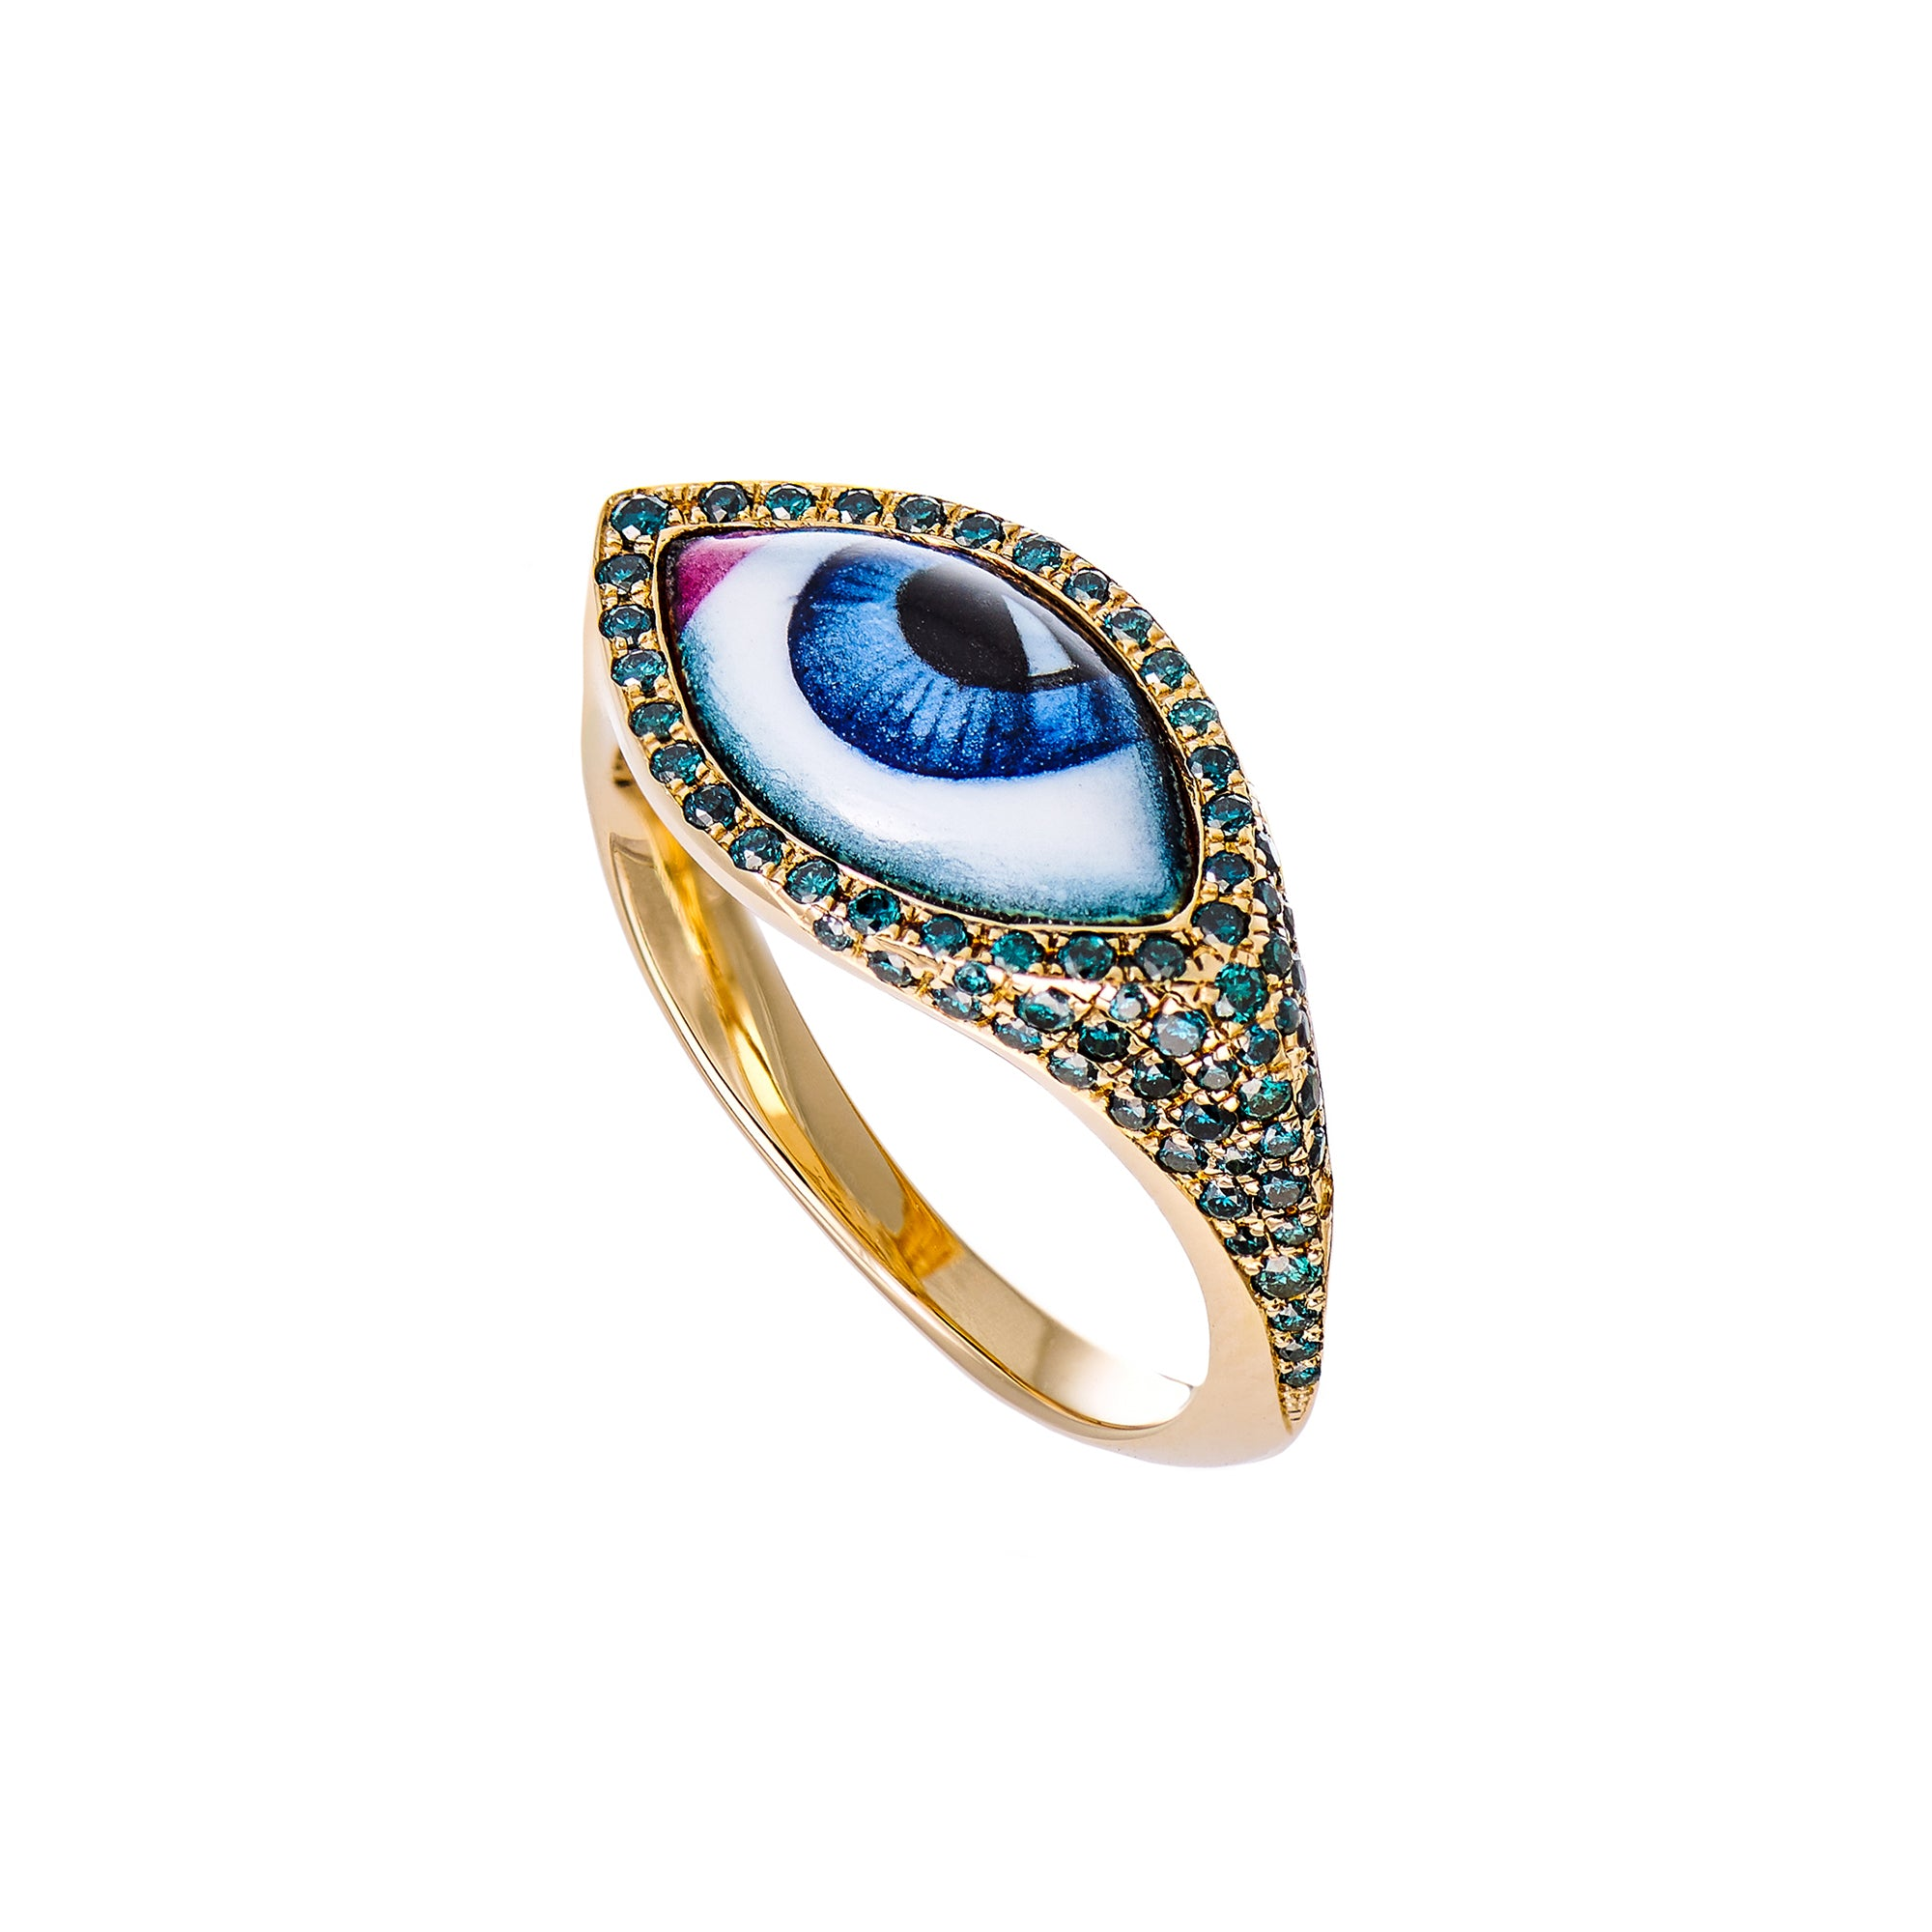 Small Blue Eye Ring - Lito - Ring | Broken English Jewelry